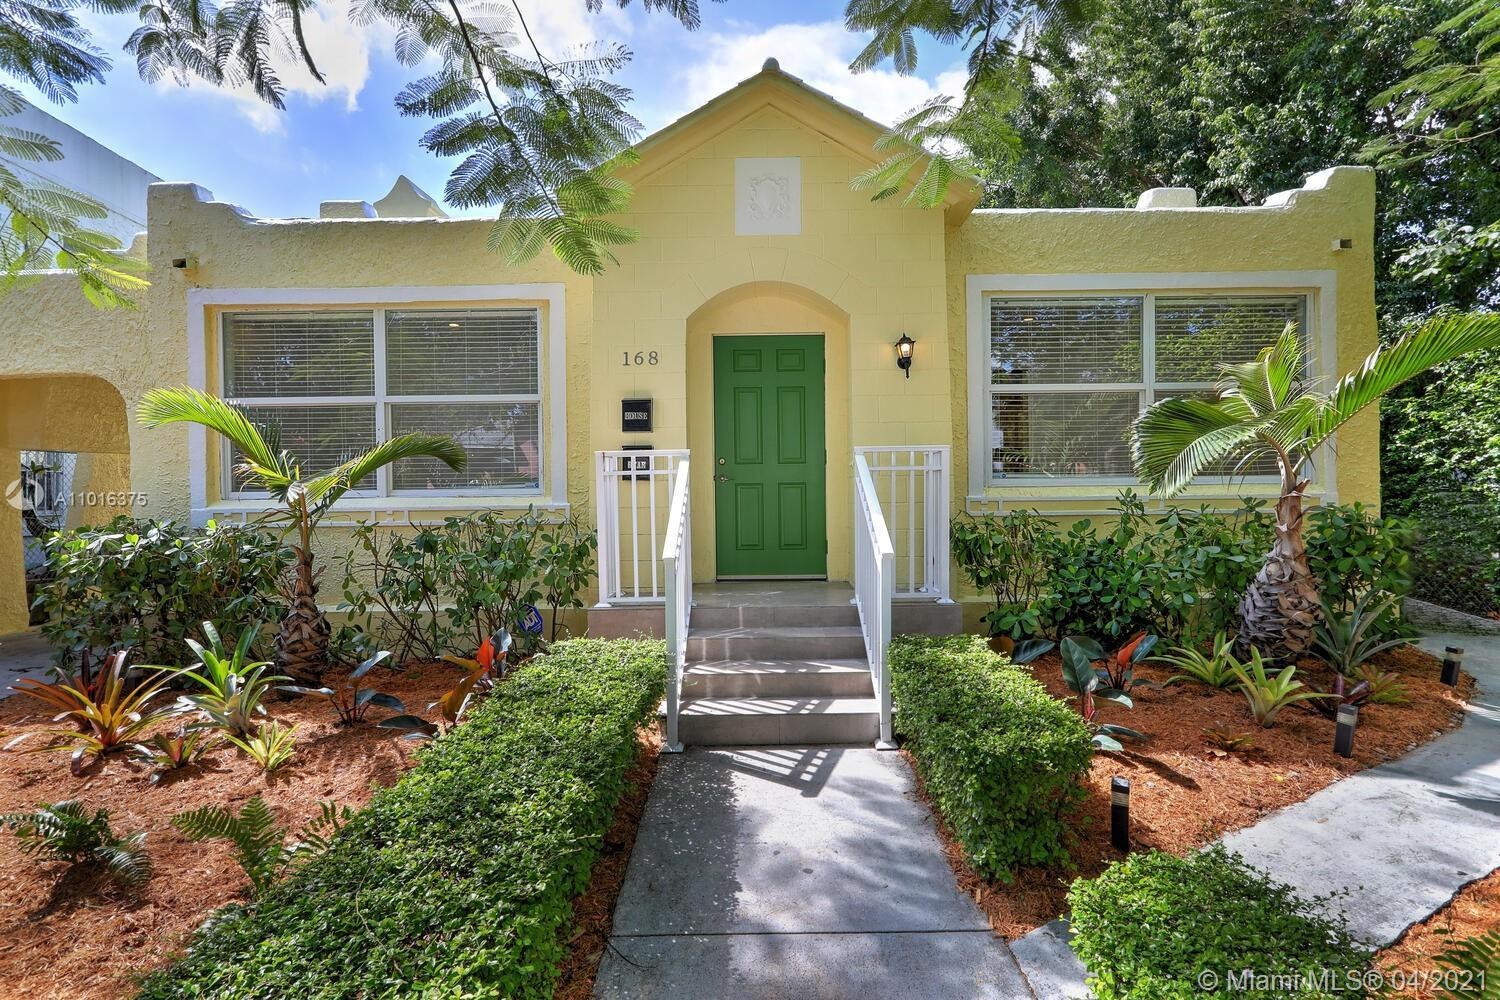 Gorgeous Art Deco Inspired Home from Old Spanish Era w/Modern Feel located in the trendy, up&coming